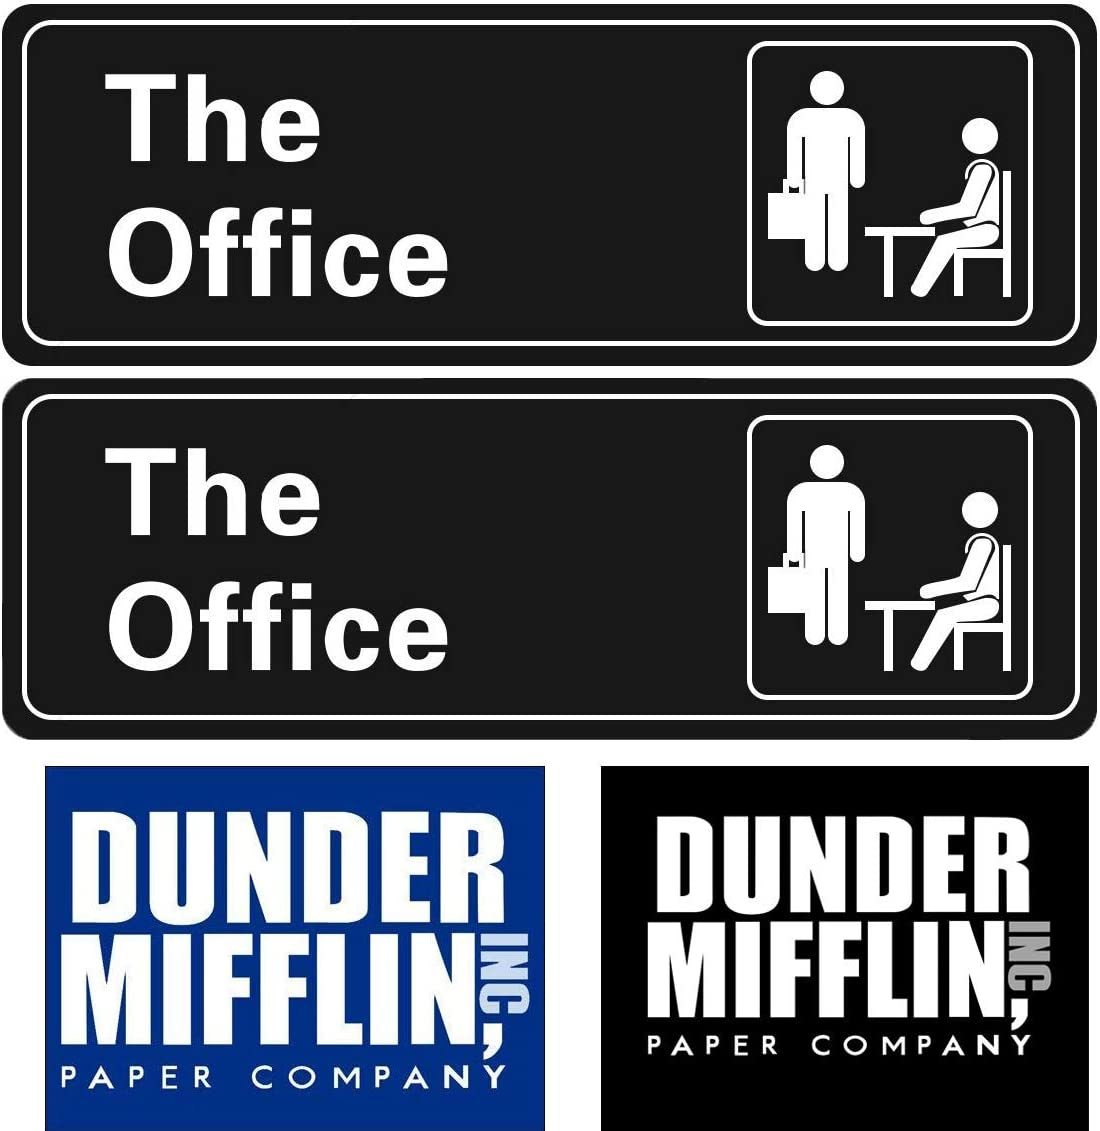 The Office Sign Stickers (4 PC/Pack), Dunder Mifflin Self Adhesive Signs for Door or Wall 9 X3, 4 X 3 Quick and Easy for Your Home Office/Business, Car, Fridge, Door, Luggage